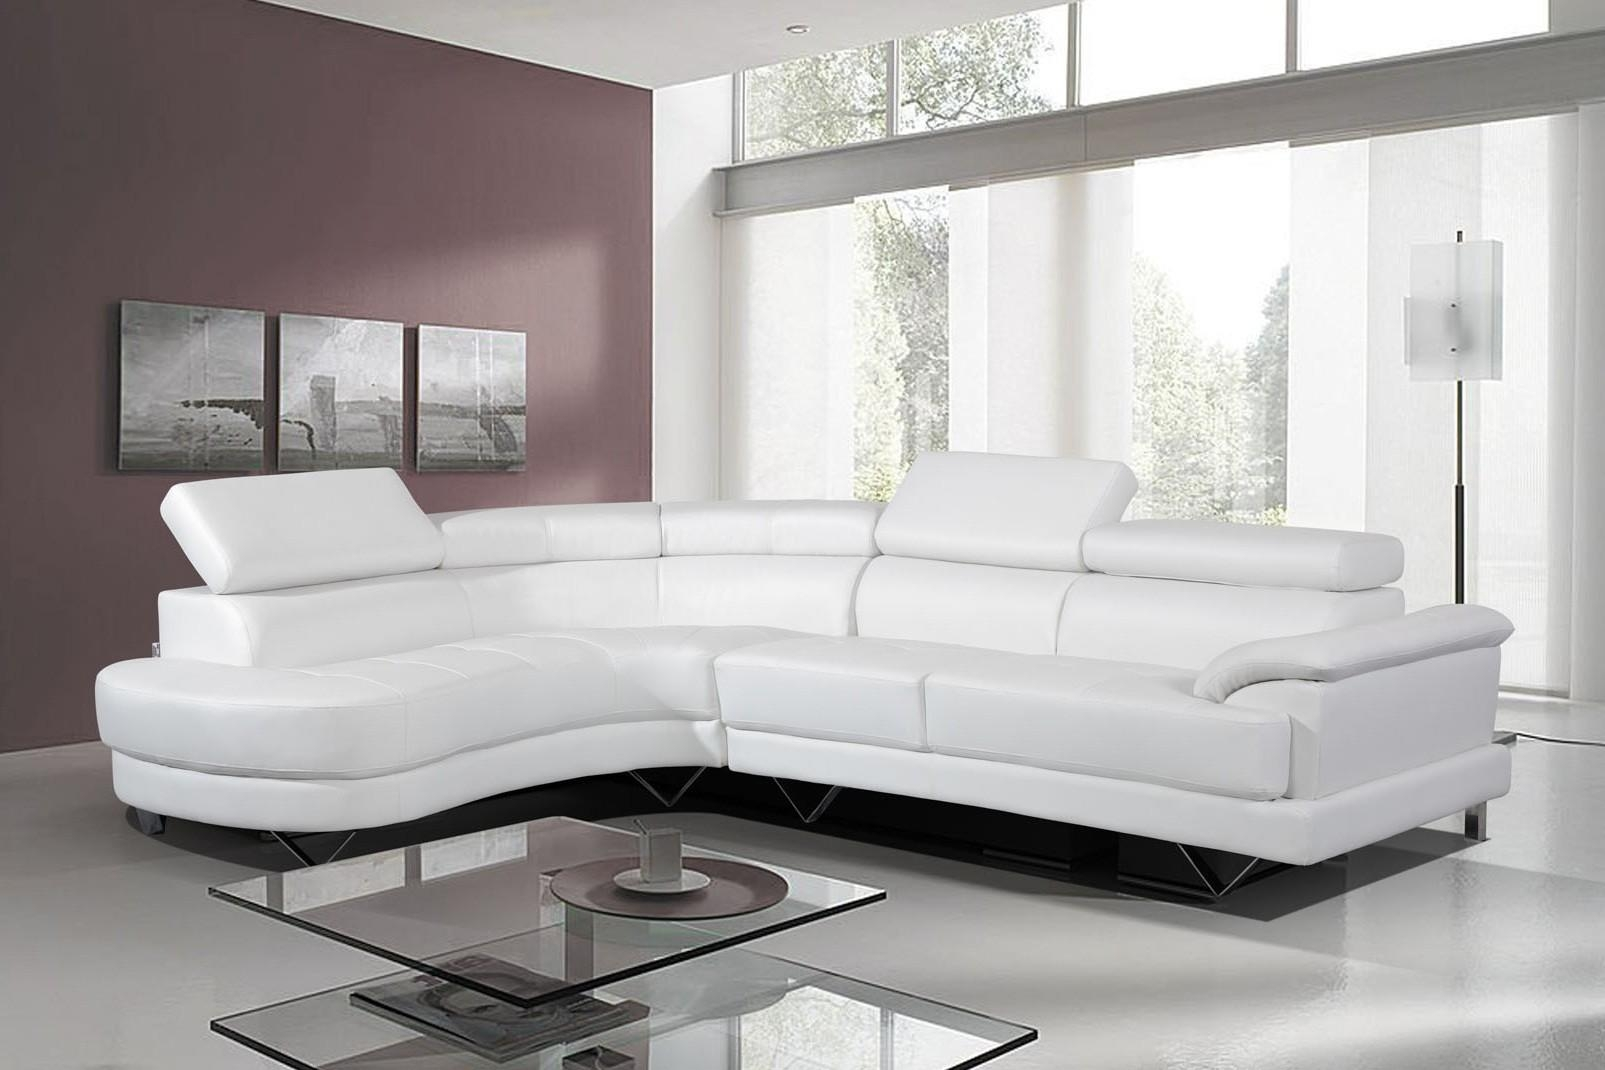 Leather Corner Sofas Elegant Home Design Pertaining To Leather Corner Sofas (View 3 of 20)